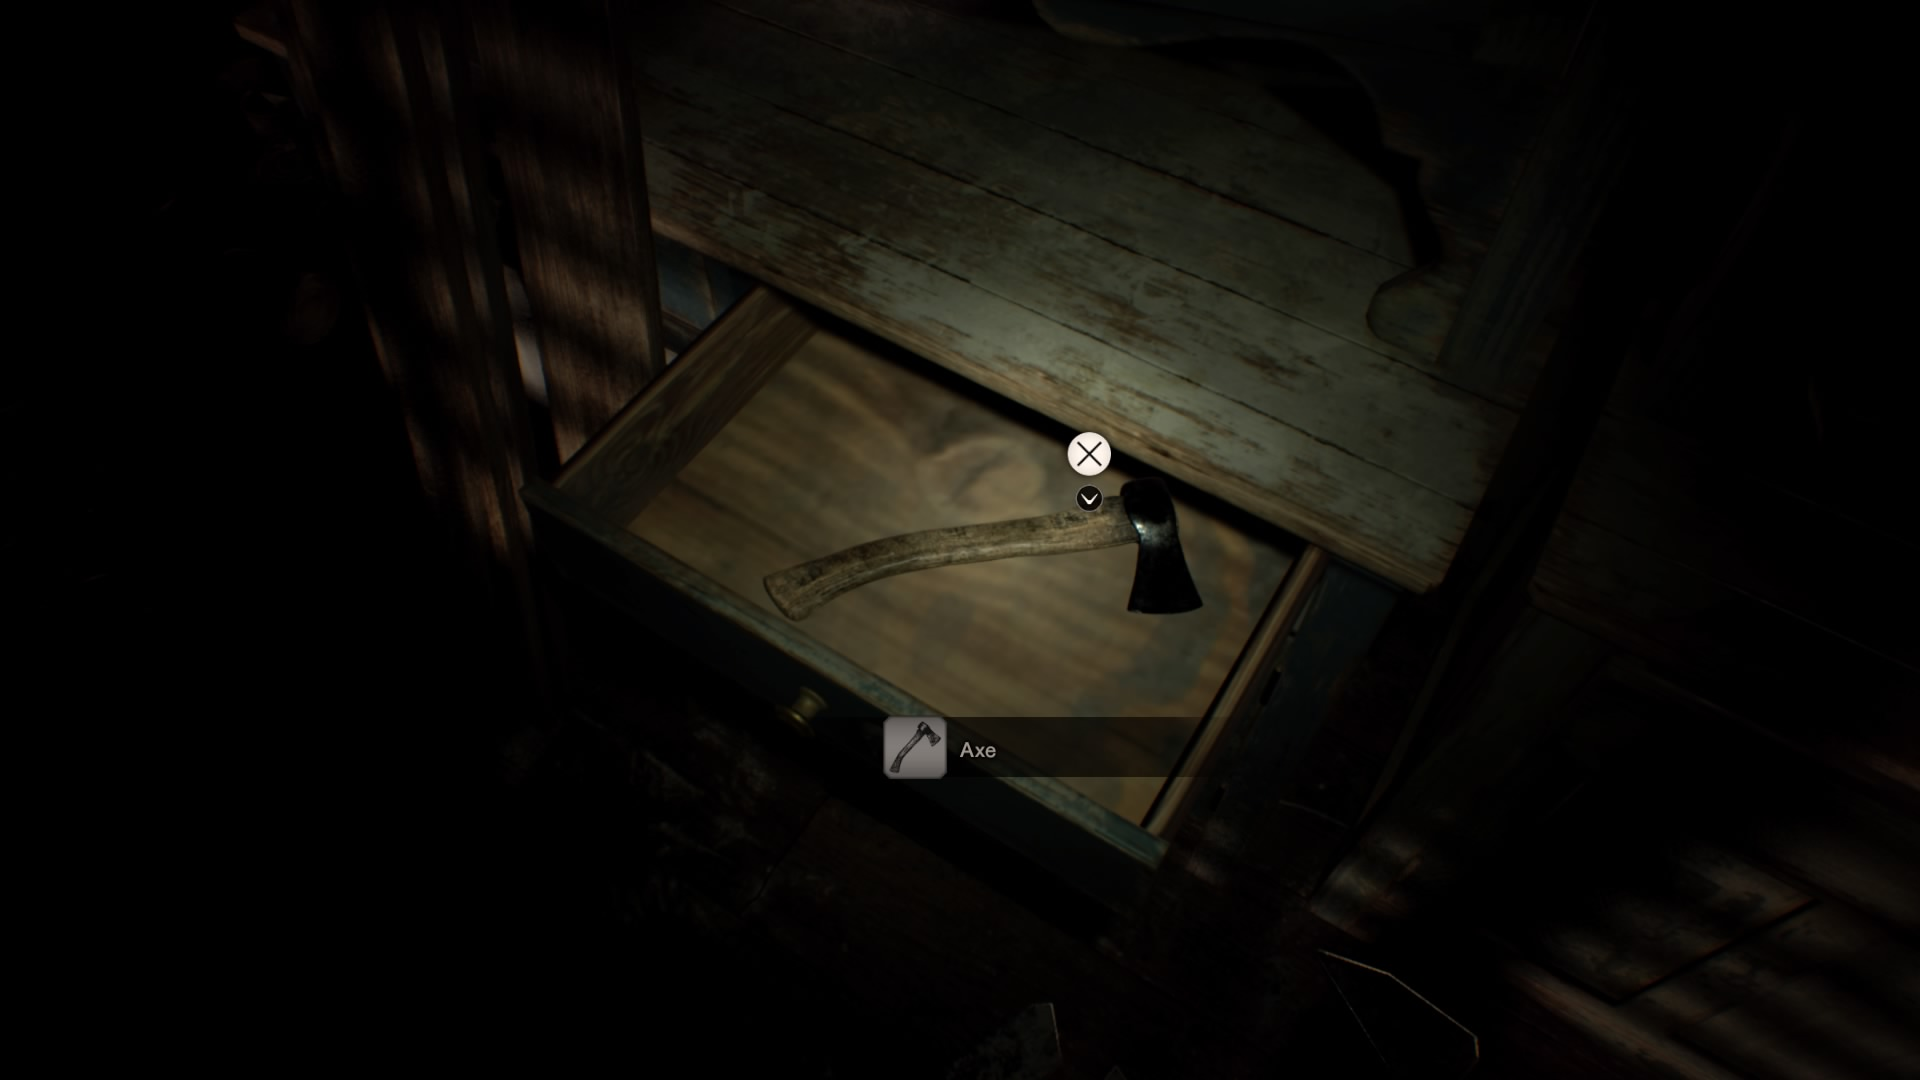 How To Get The Dirty Coin In The Resident Evil 7 Demo